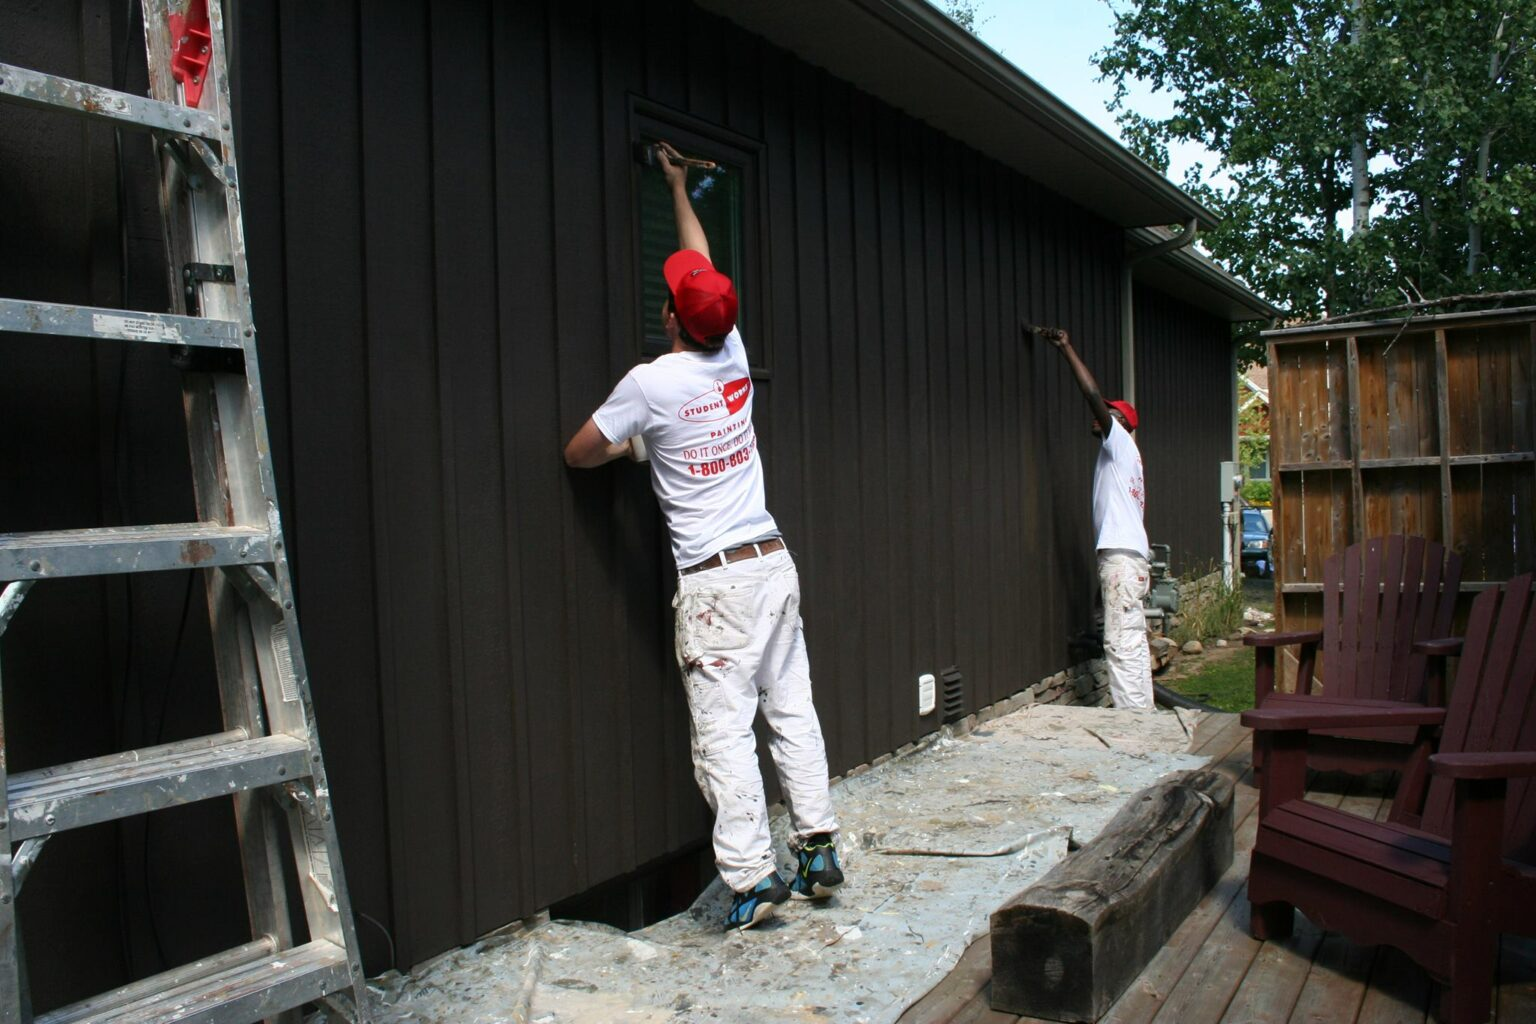 The Paint Pros Professional Painter in North York